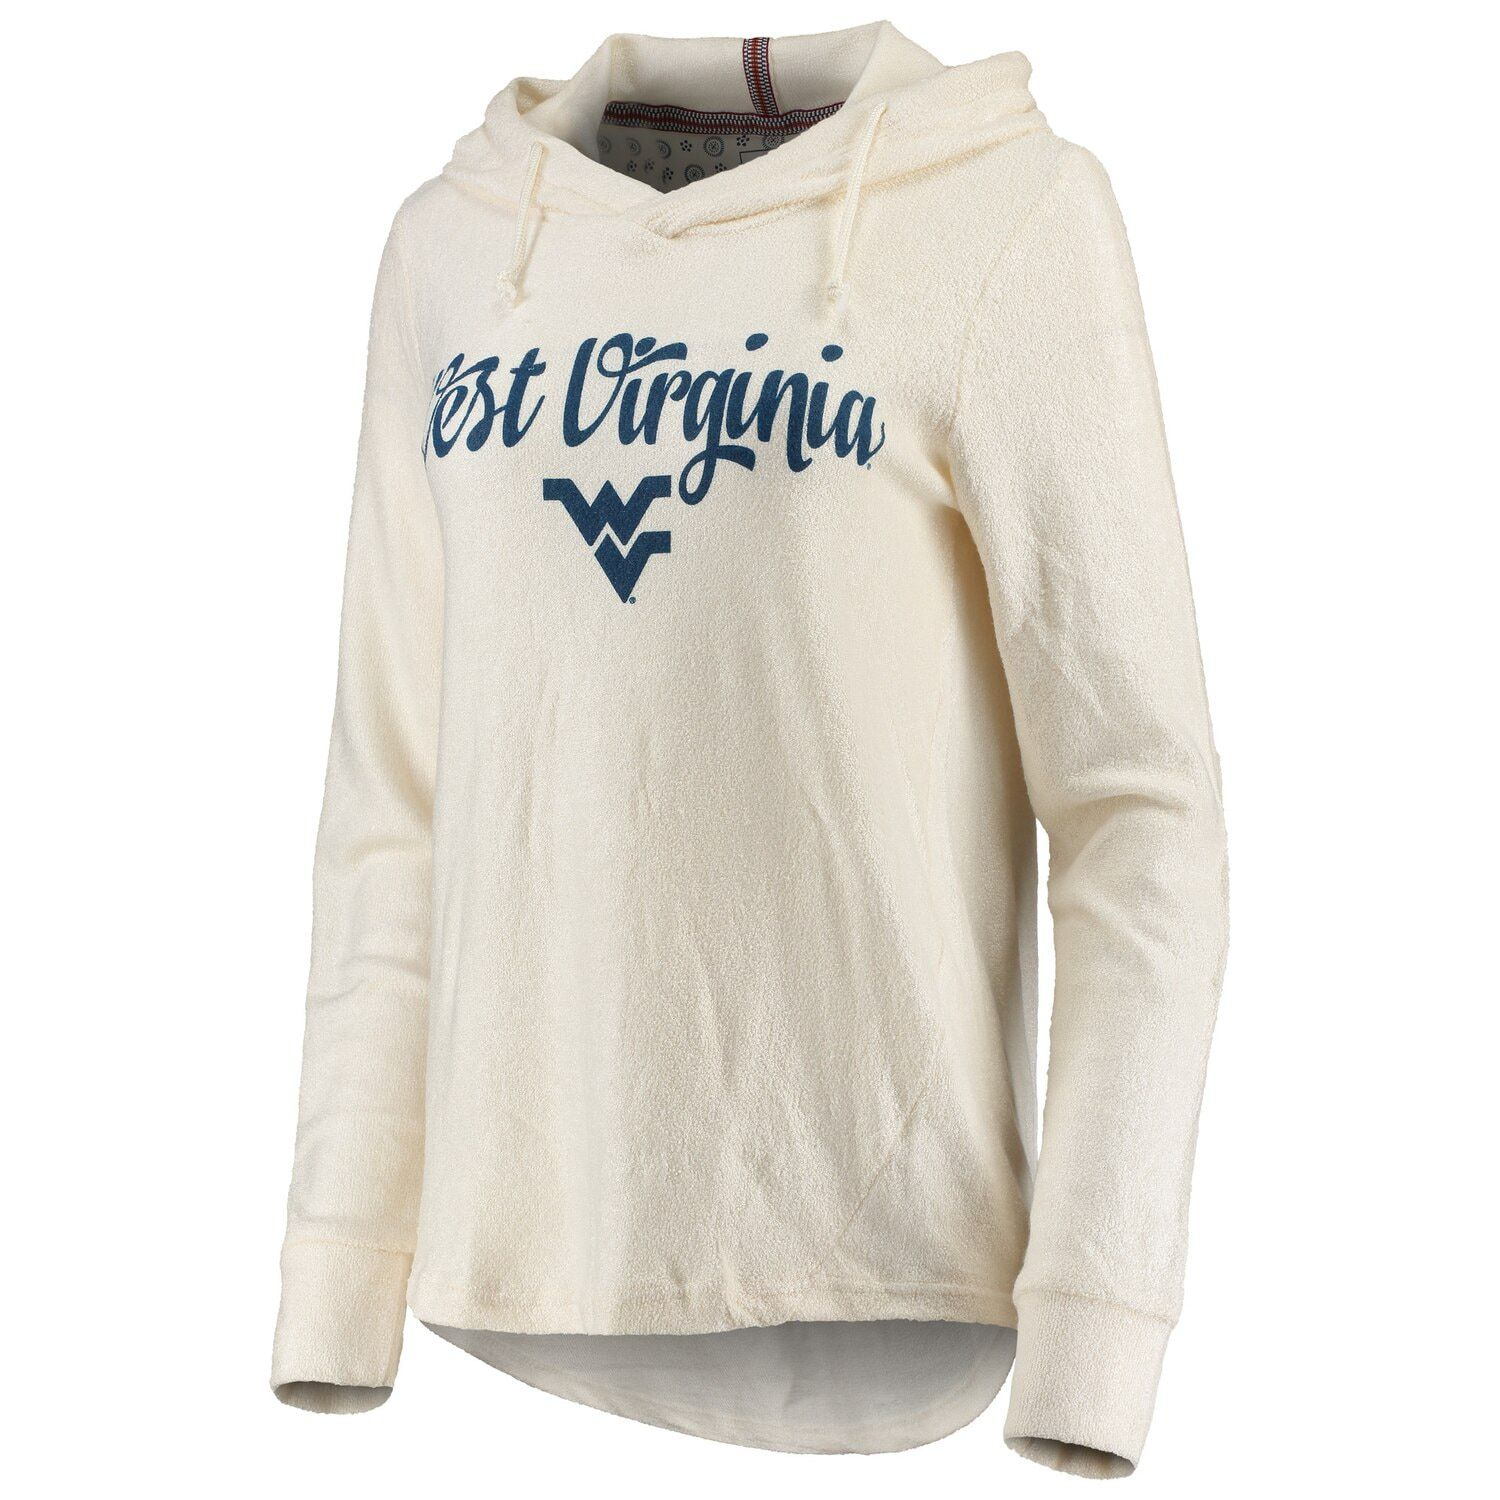 Women's Pressbox Cream West Virginia Mountaineers Supersoft Cuddle Knit Pullover Hoodie #westvirginia